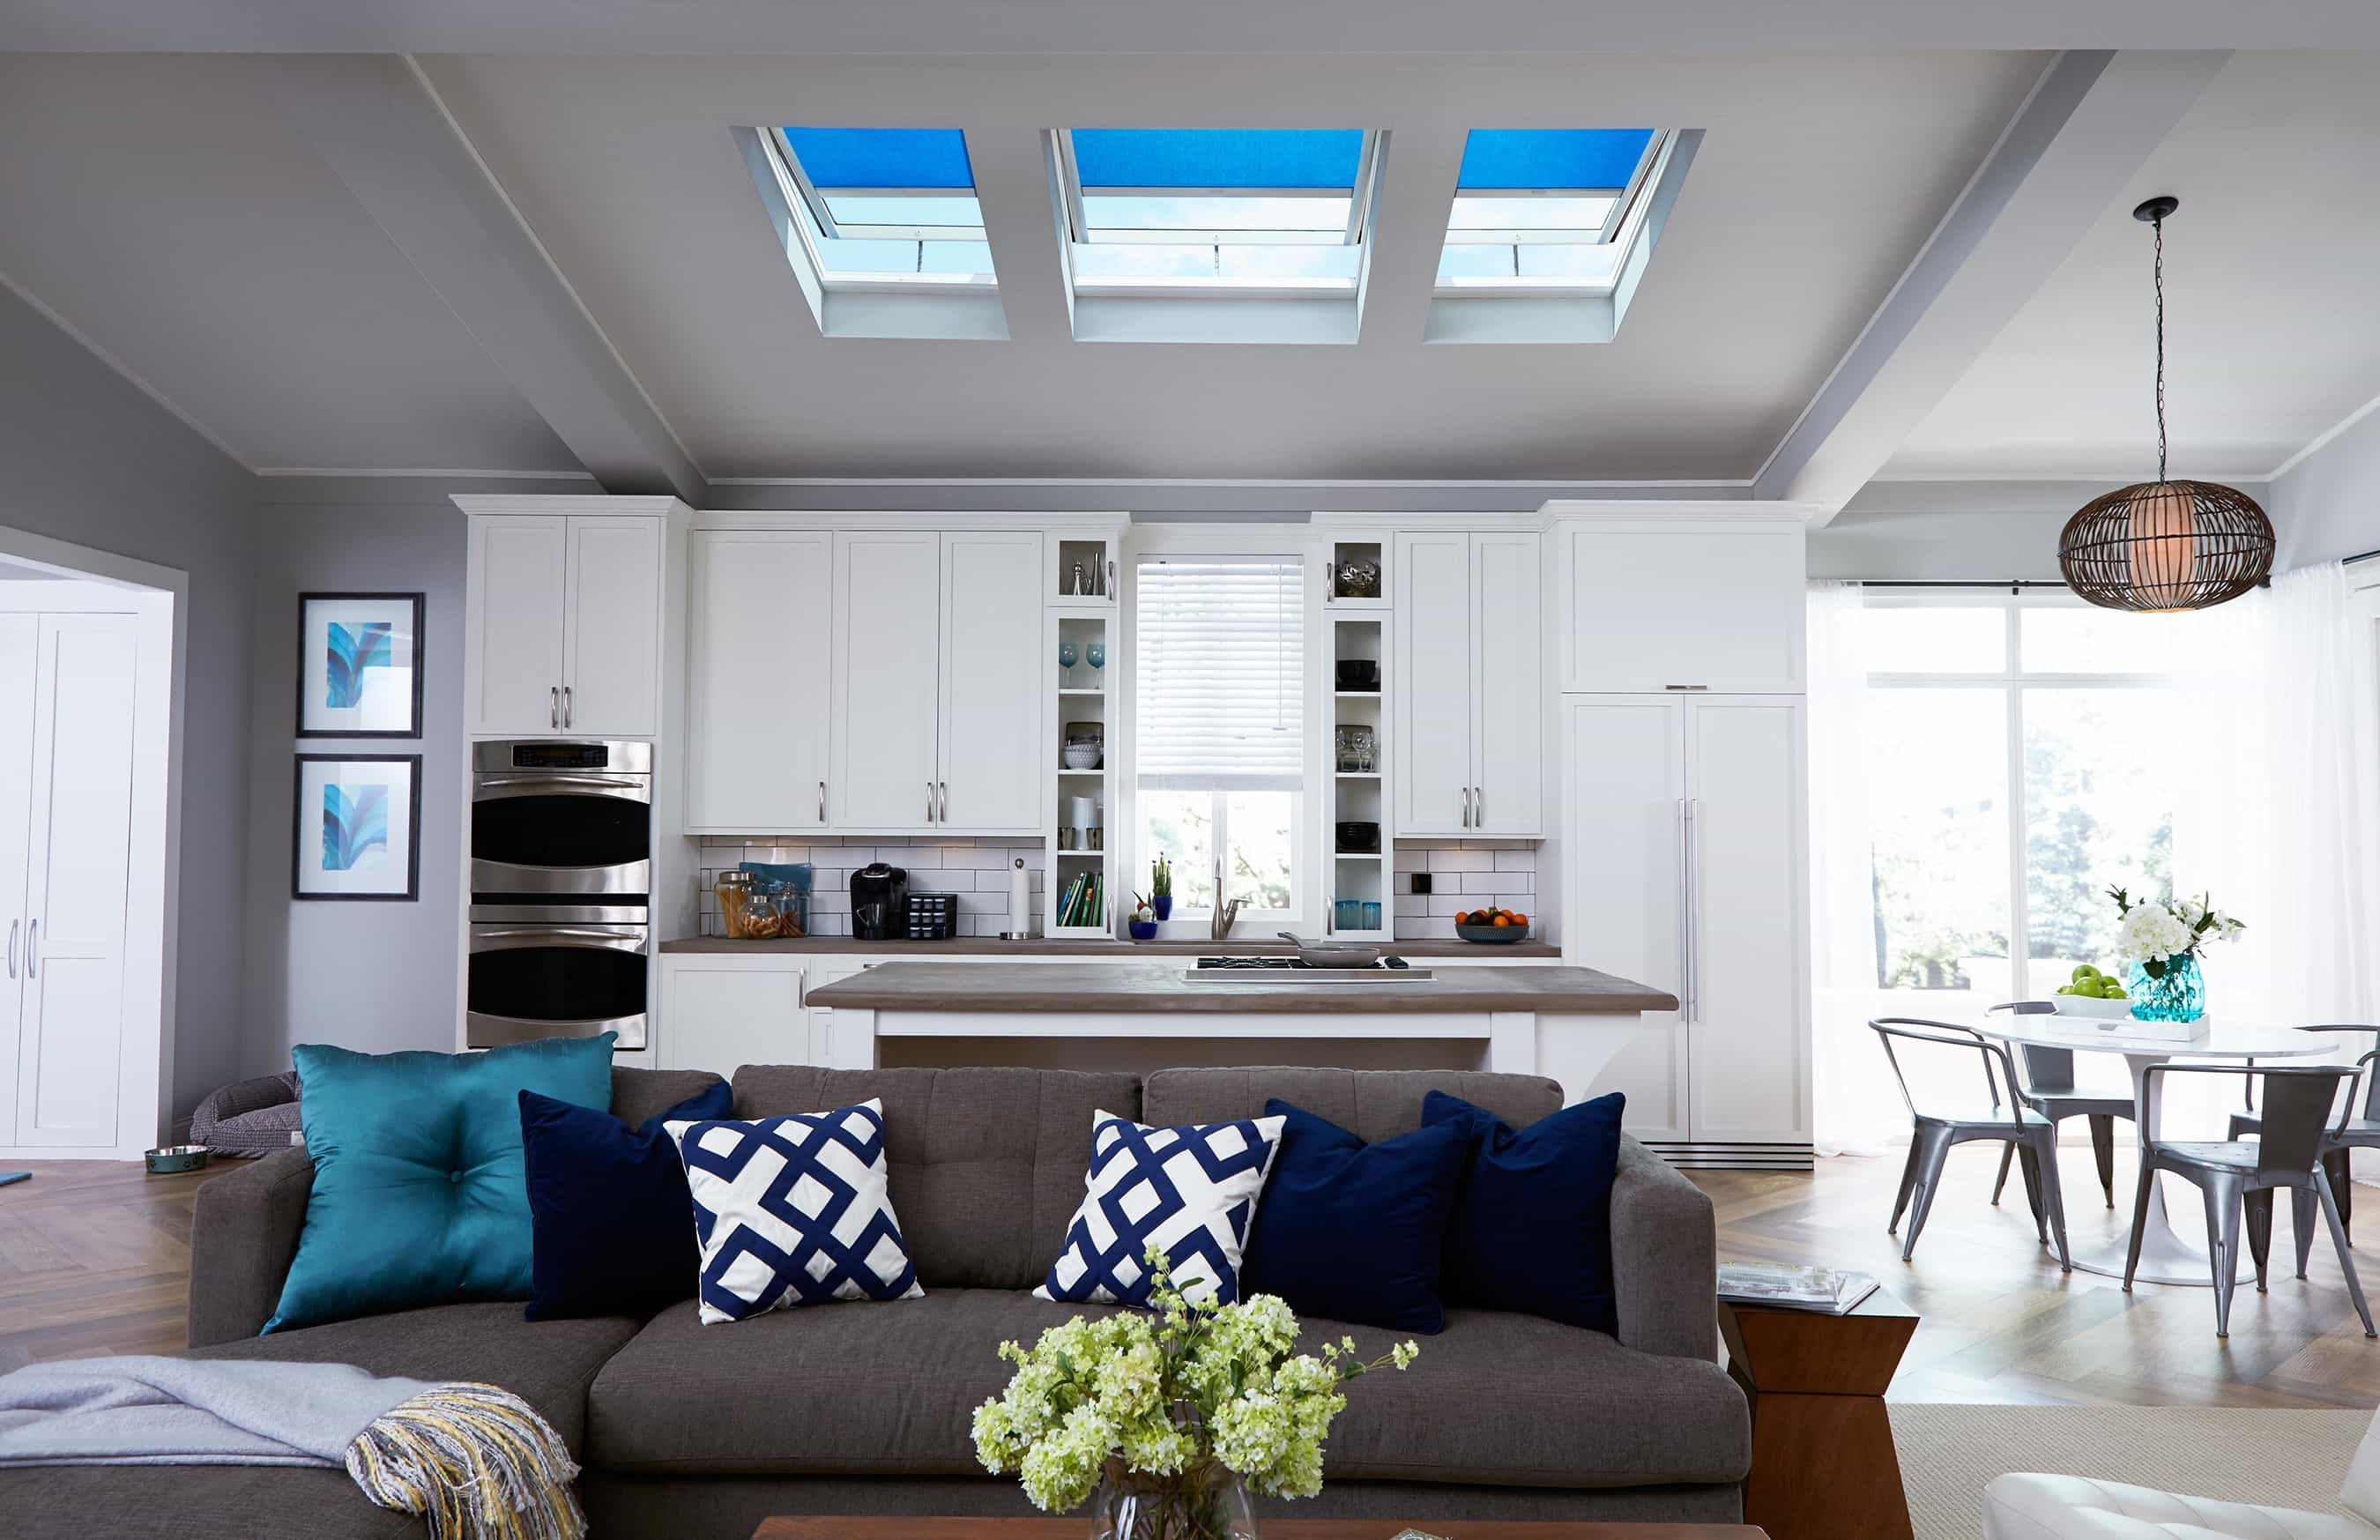 Modern Motorized Skylight Blackout Shade For Modern Open Space Living Room (Image 15 of 25)